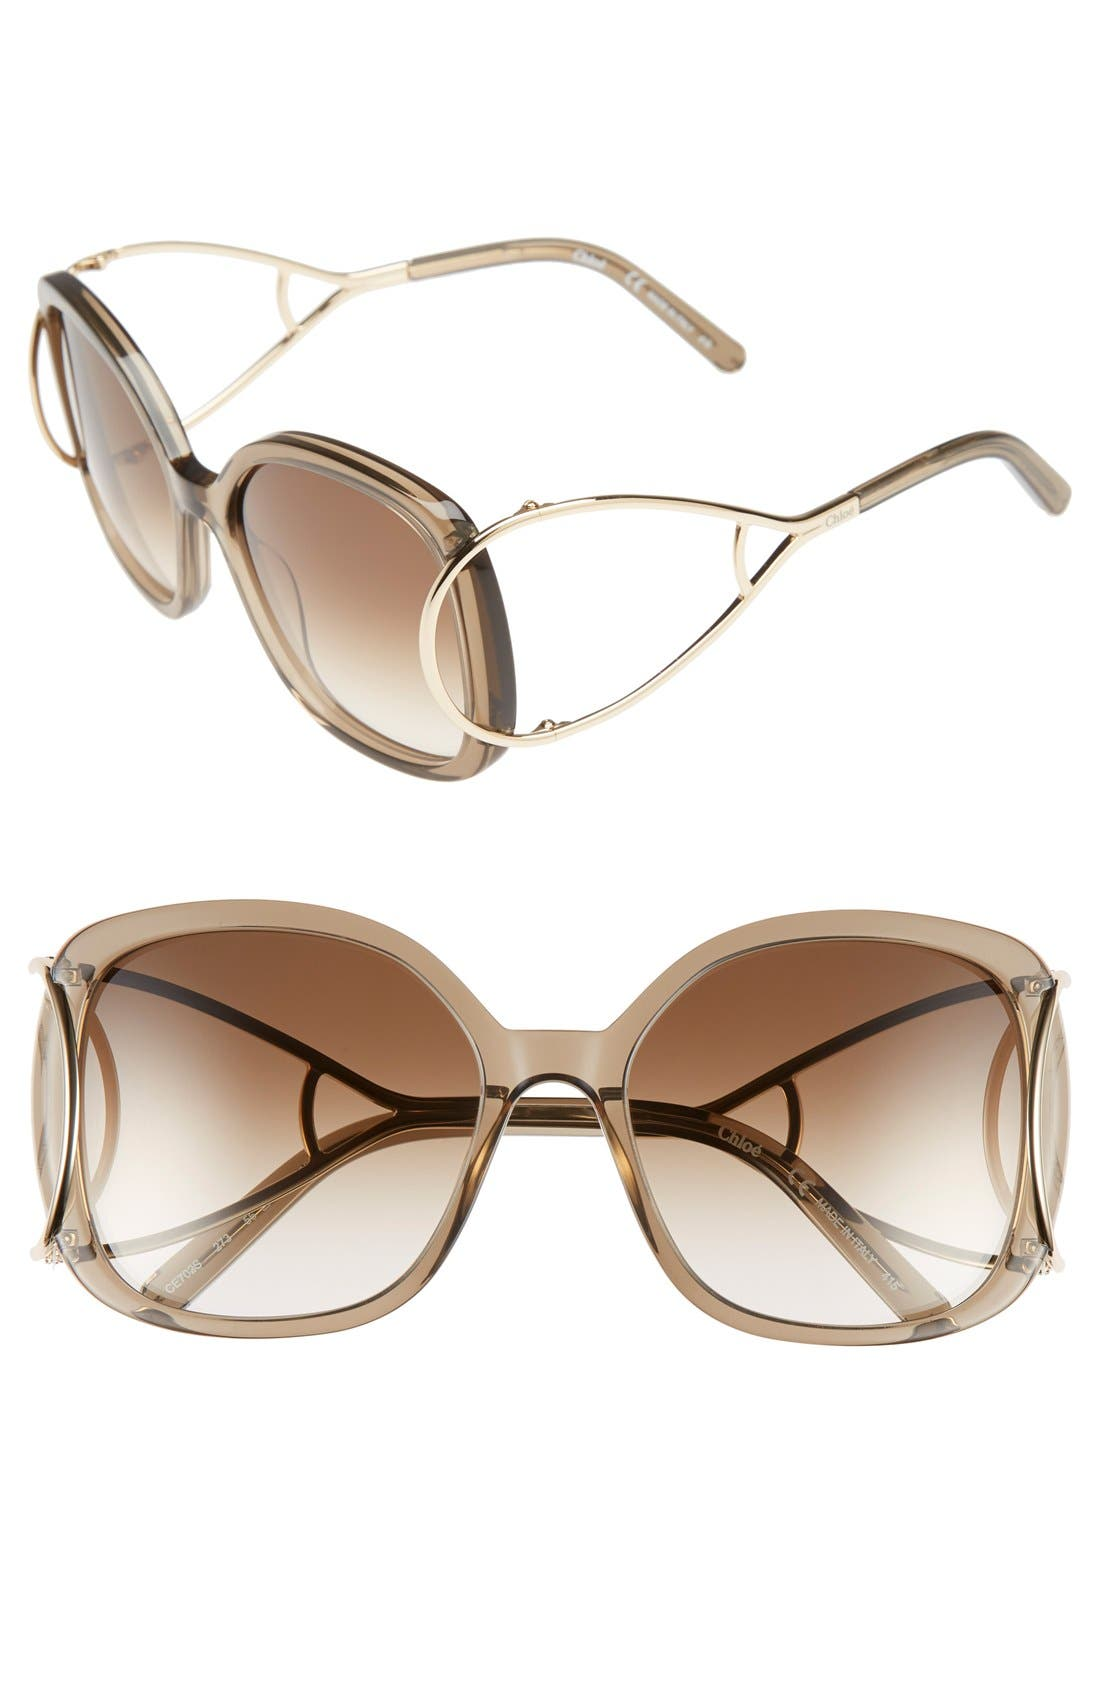 Chloé 'Jackson' 56mm Square Sunglasses